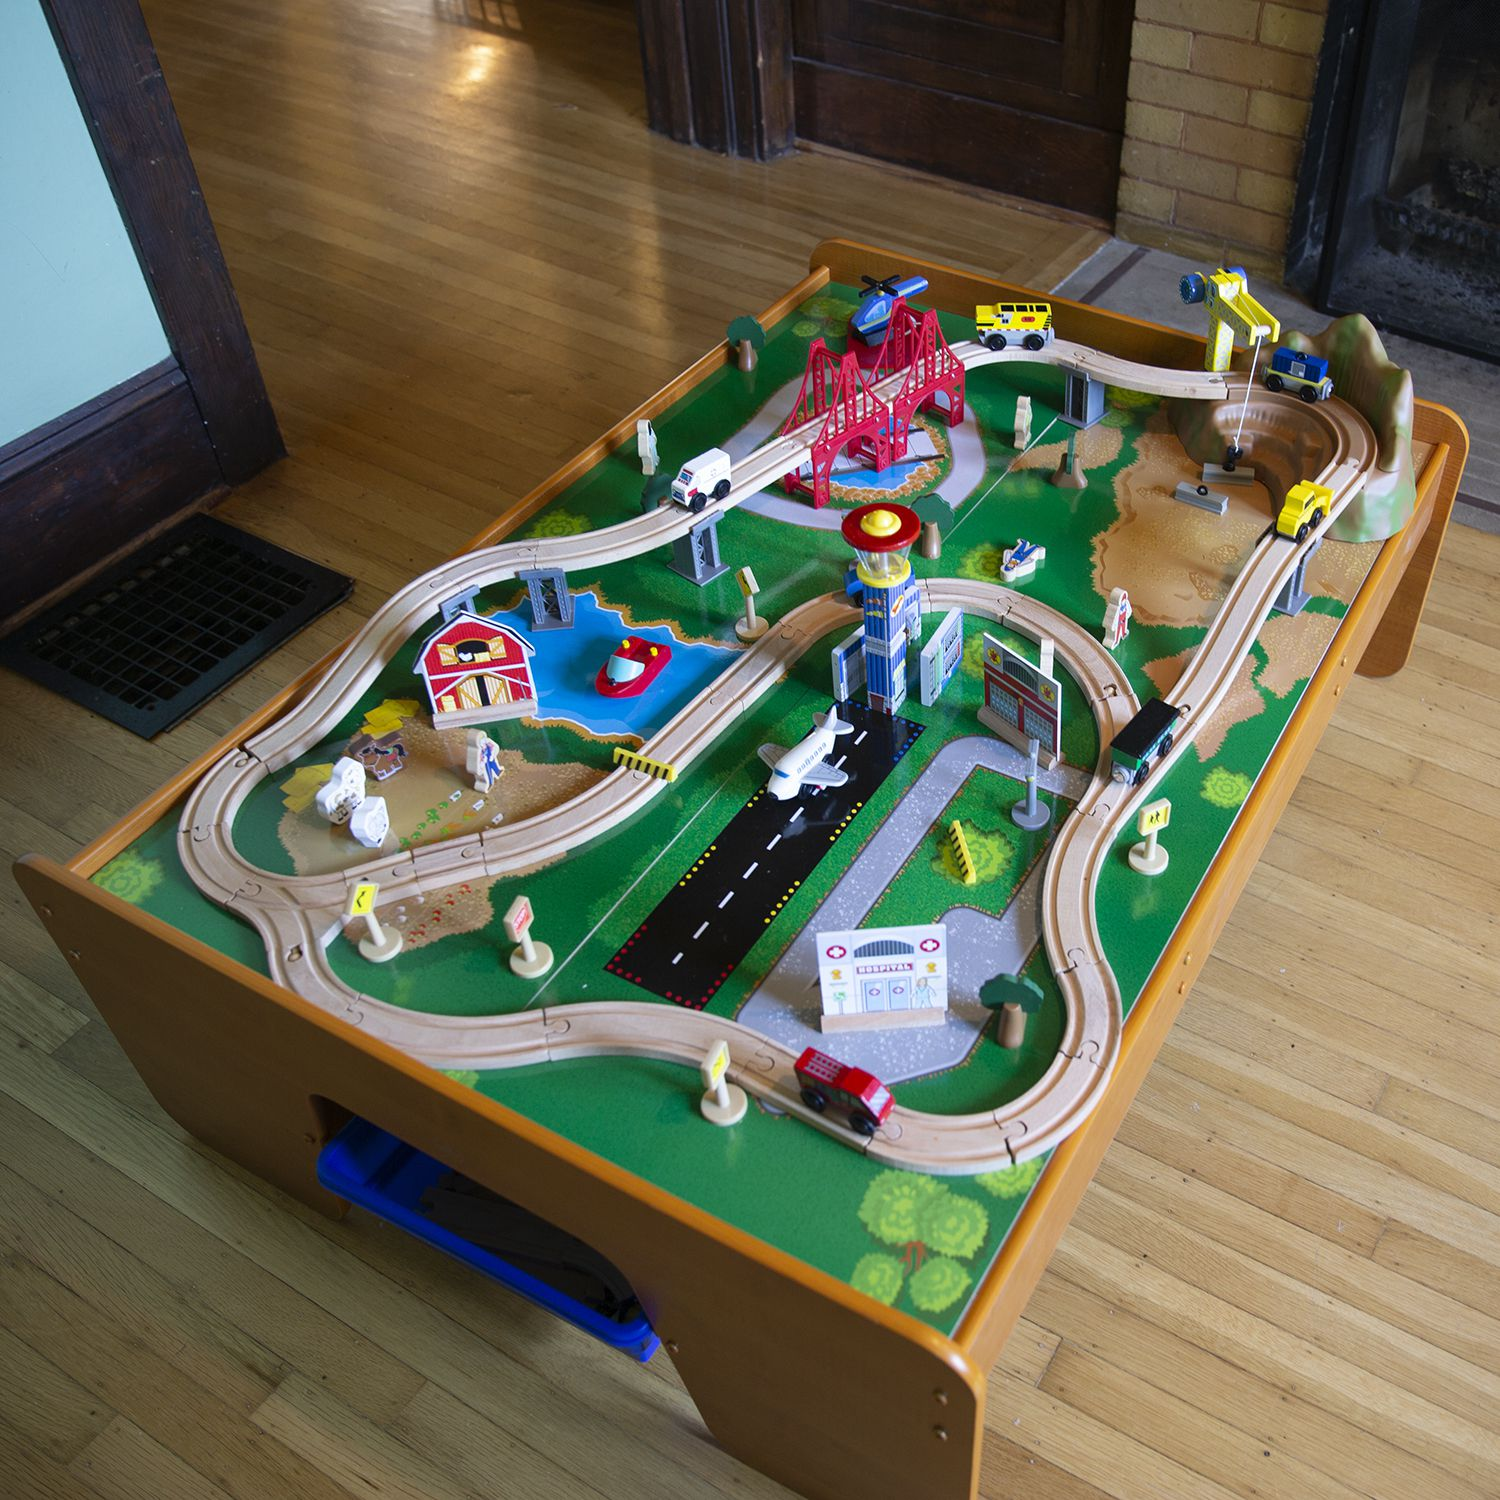 KidKraft Ride Around Town Train Table Review: Loads of Fun